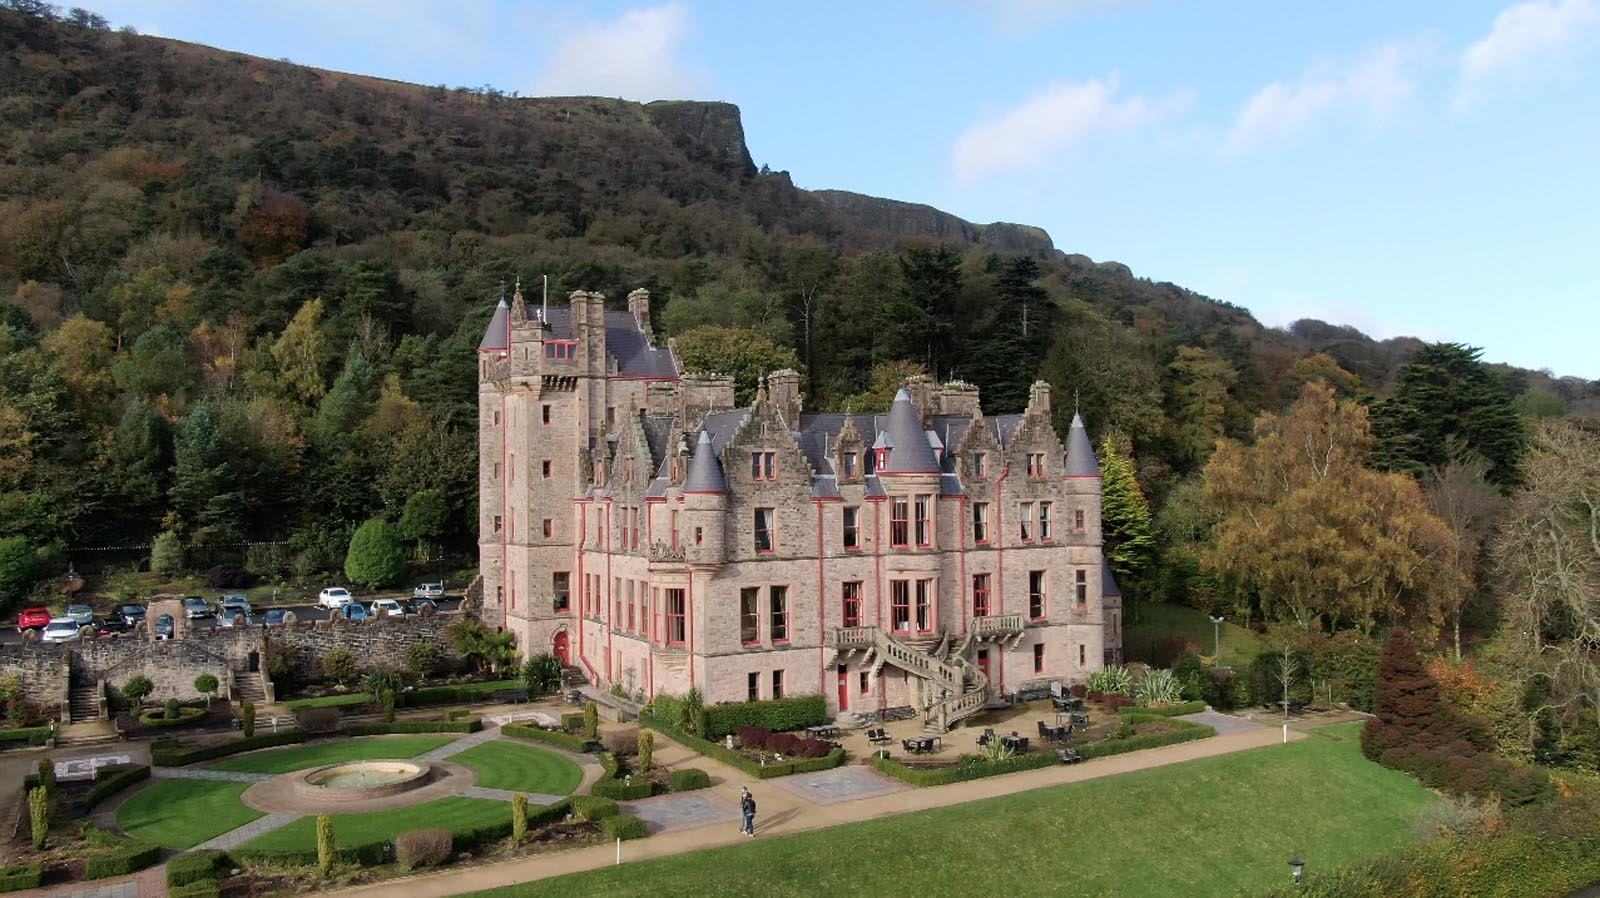 Aerial drone photography and video production services Dublin and Ireland portfolio - screenshot 2 of Belfast Castle video